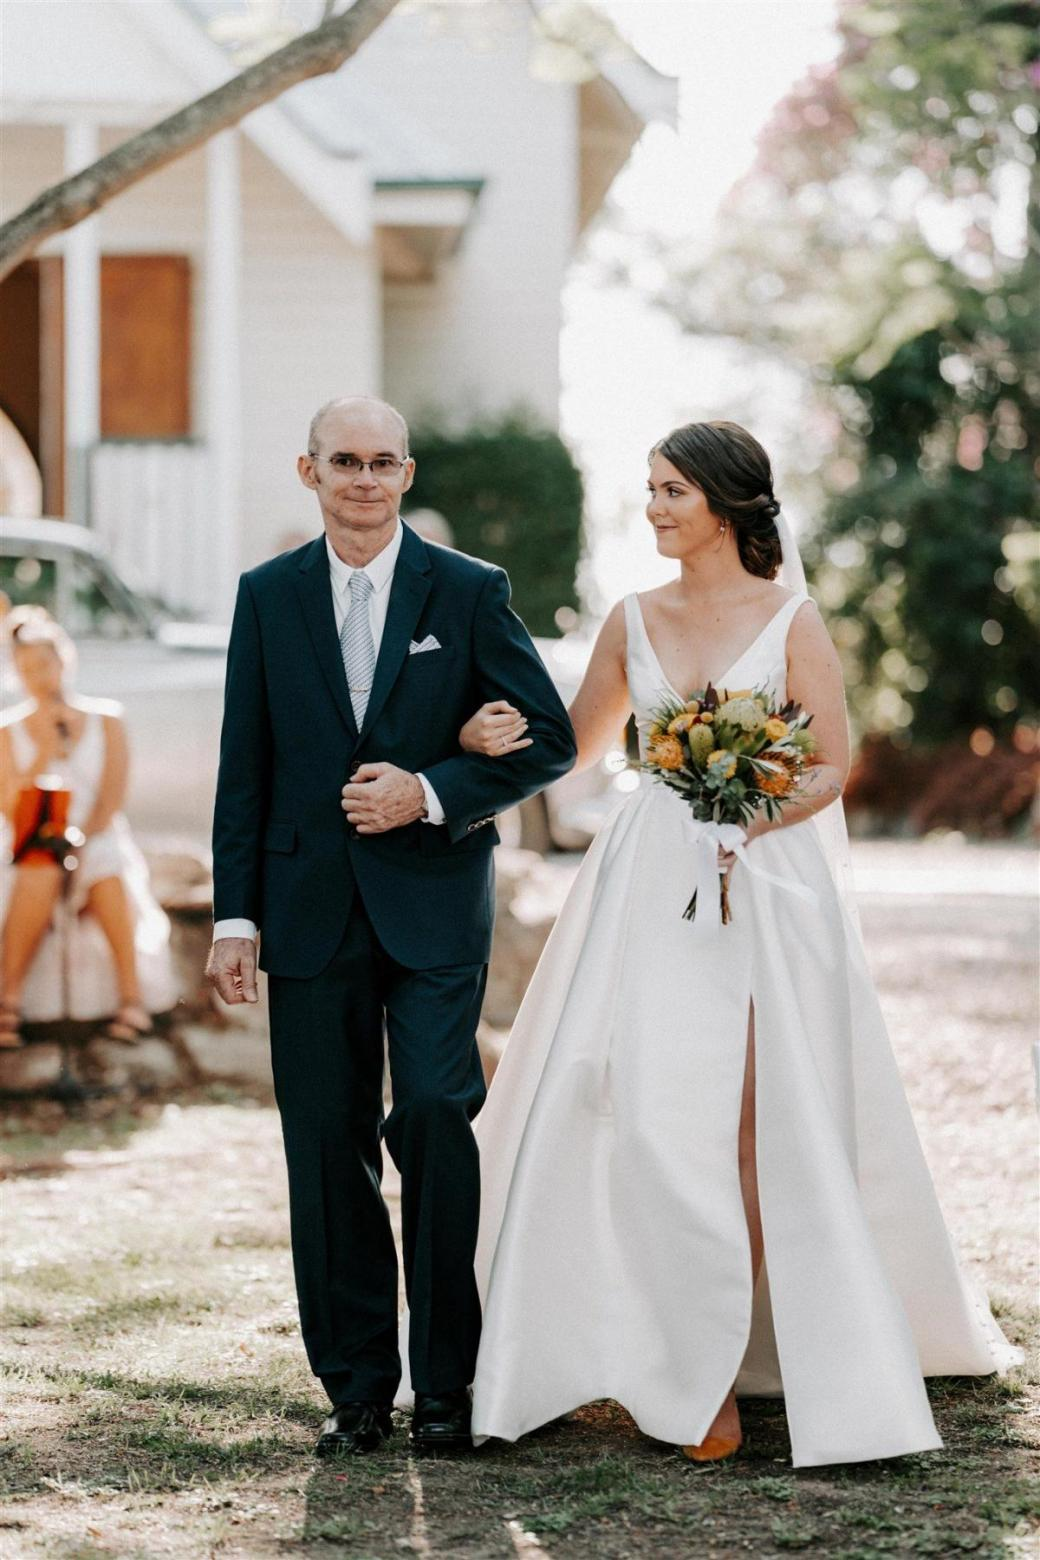 Real bride Alexandra wore the Bespoke Taryn/Camille wedding dress by Karen Willis Holmes.